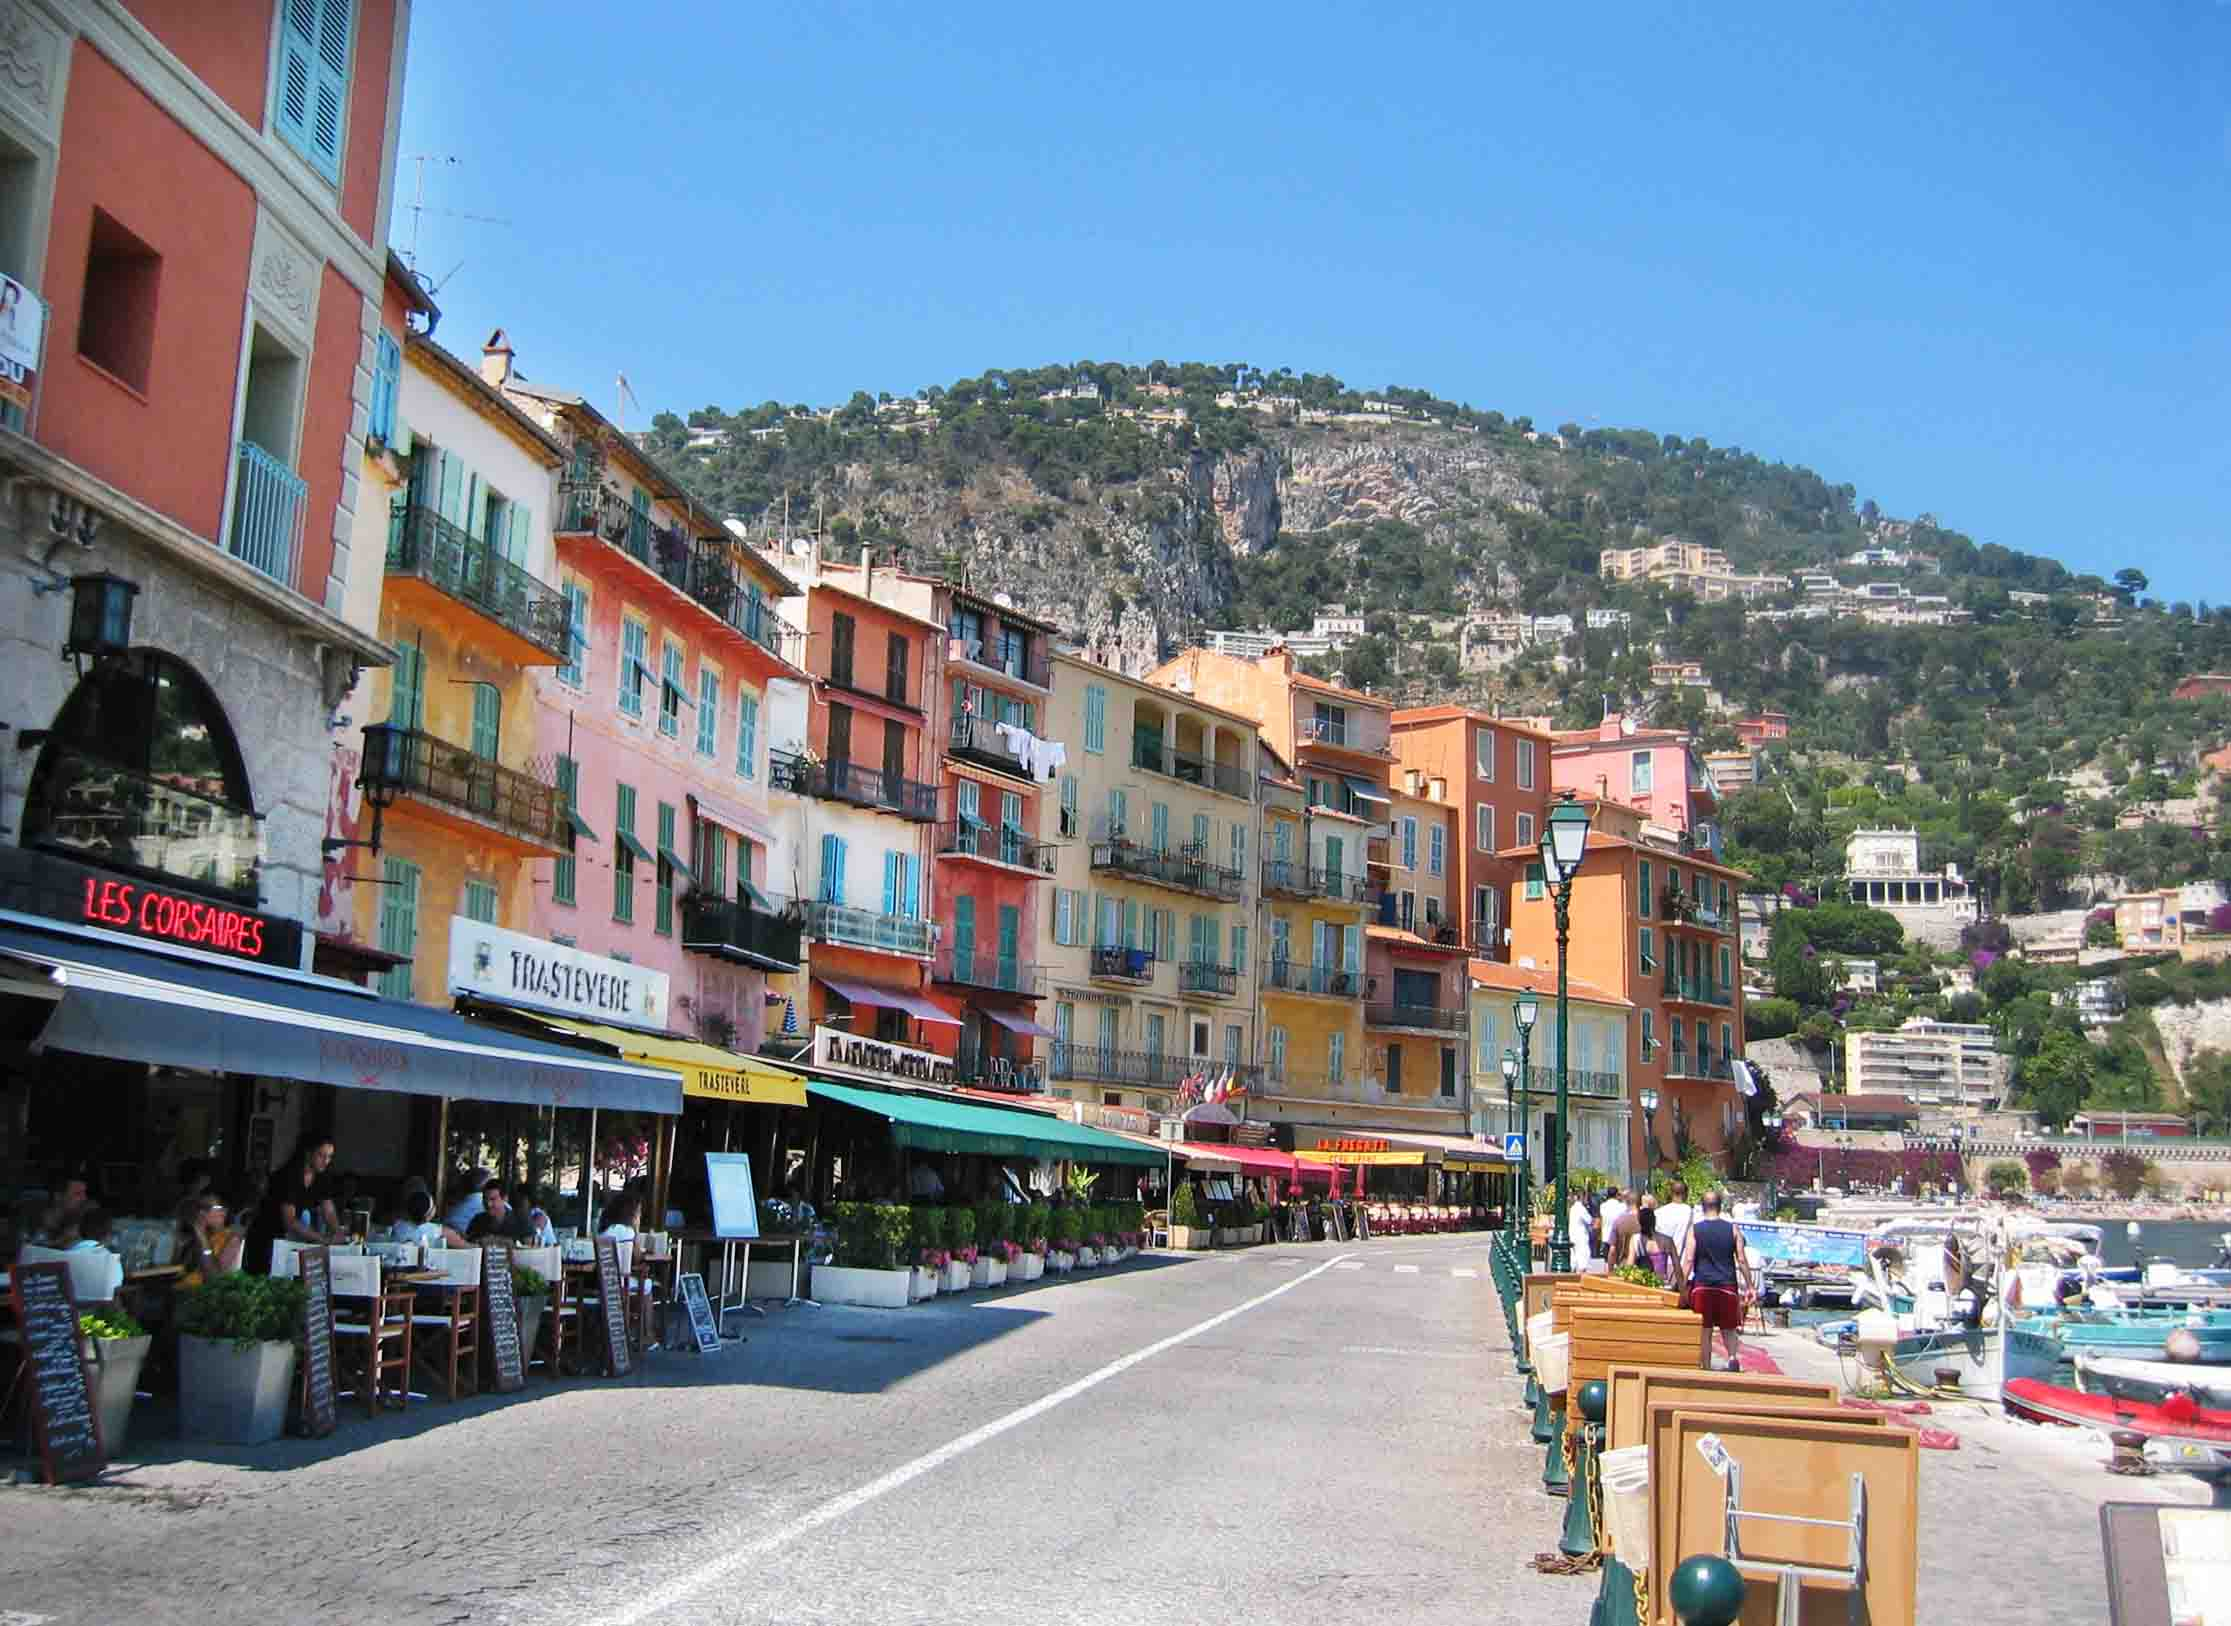 villefranche-sur-mer-french-riviera-restaurants-tourism-easy-booking-group.jpg